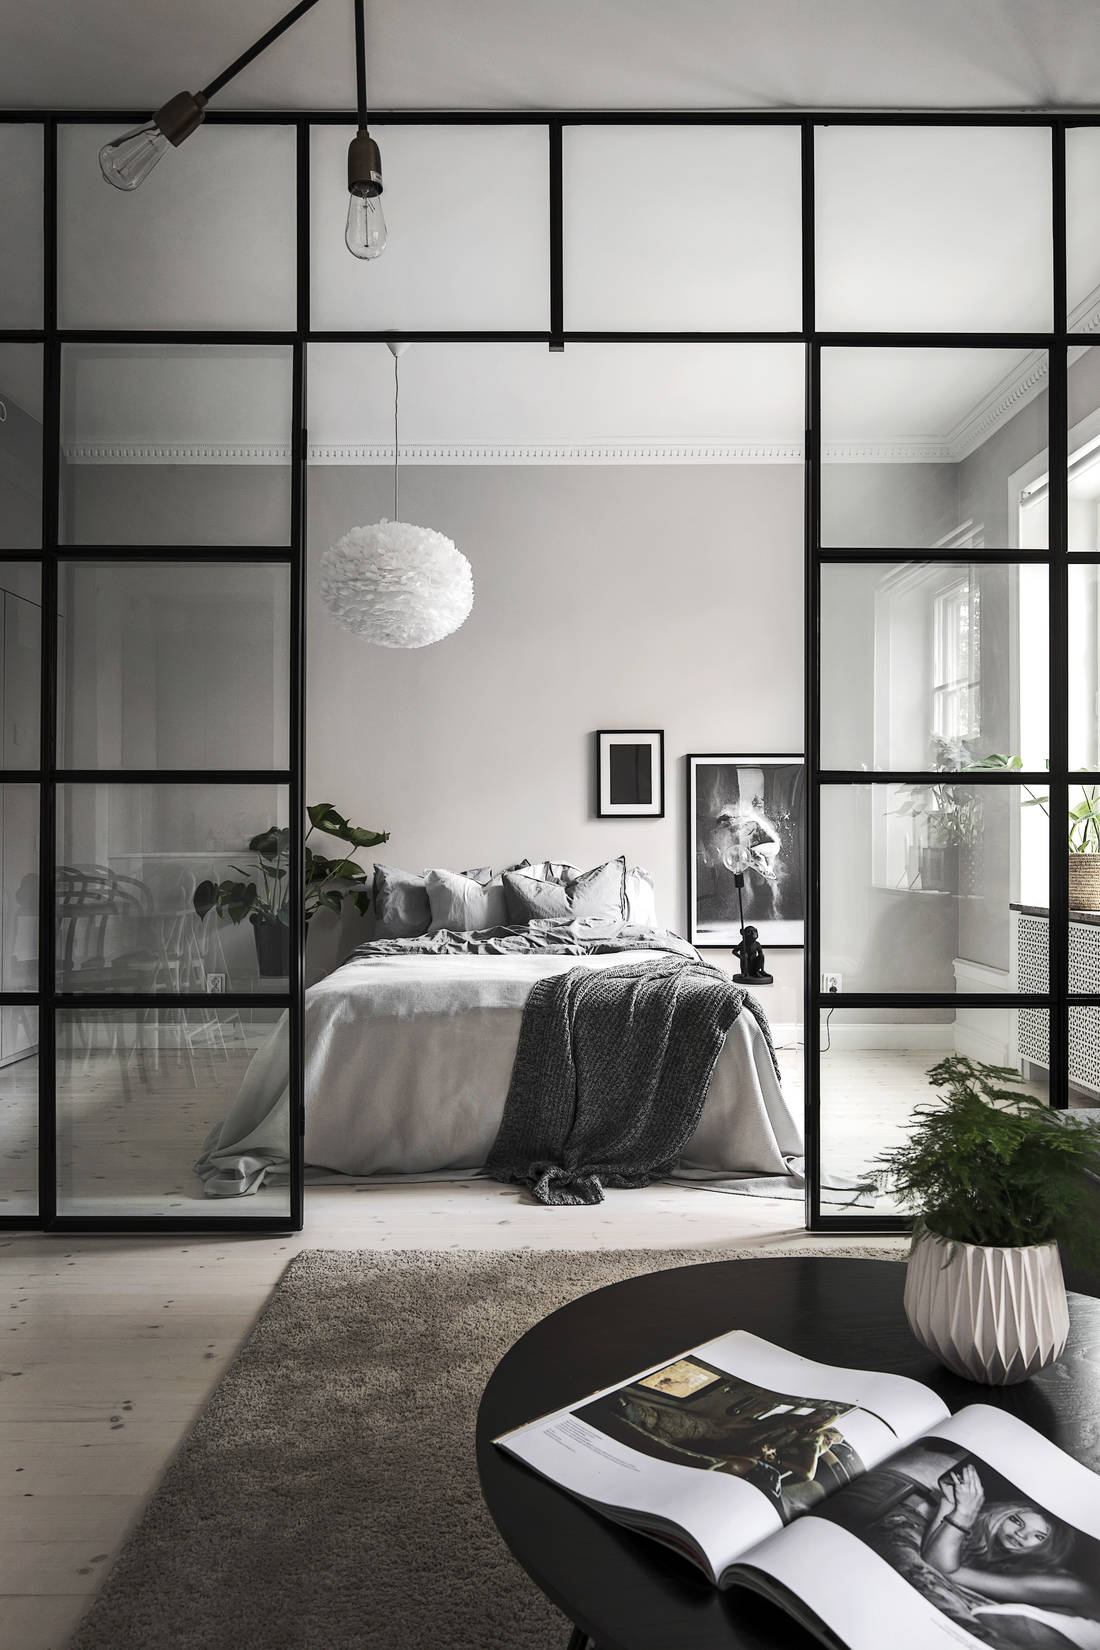 Kitchen  living room and bedroom in one   via Coco Lapine Design blog. Kitchen  living room and bedroom in one   COCO LAPINE DESIGNCOCO